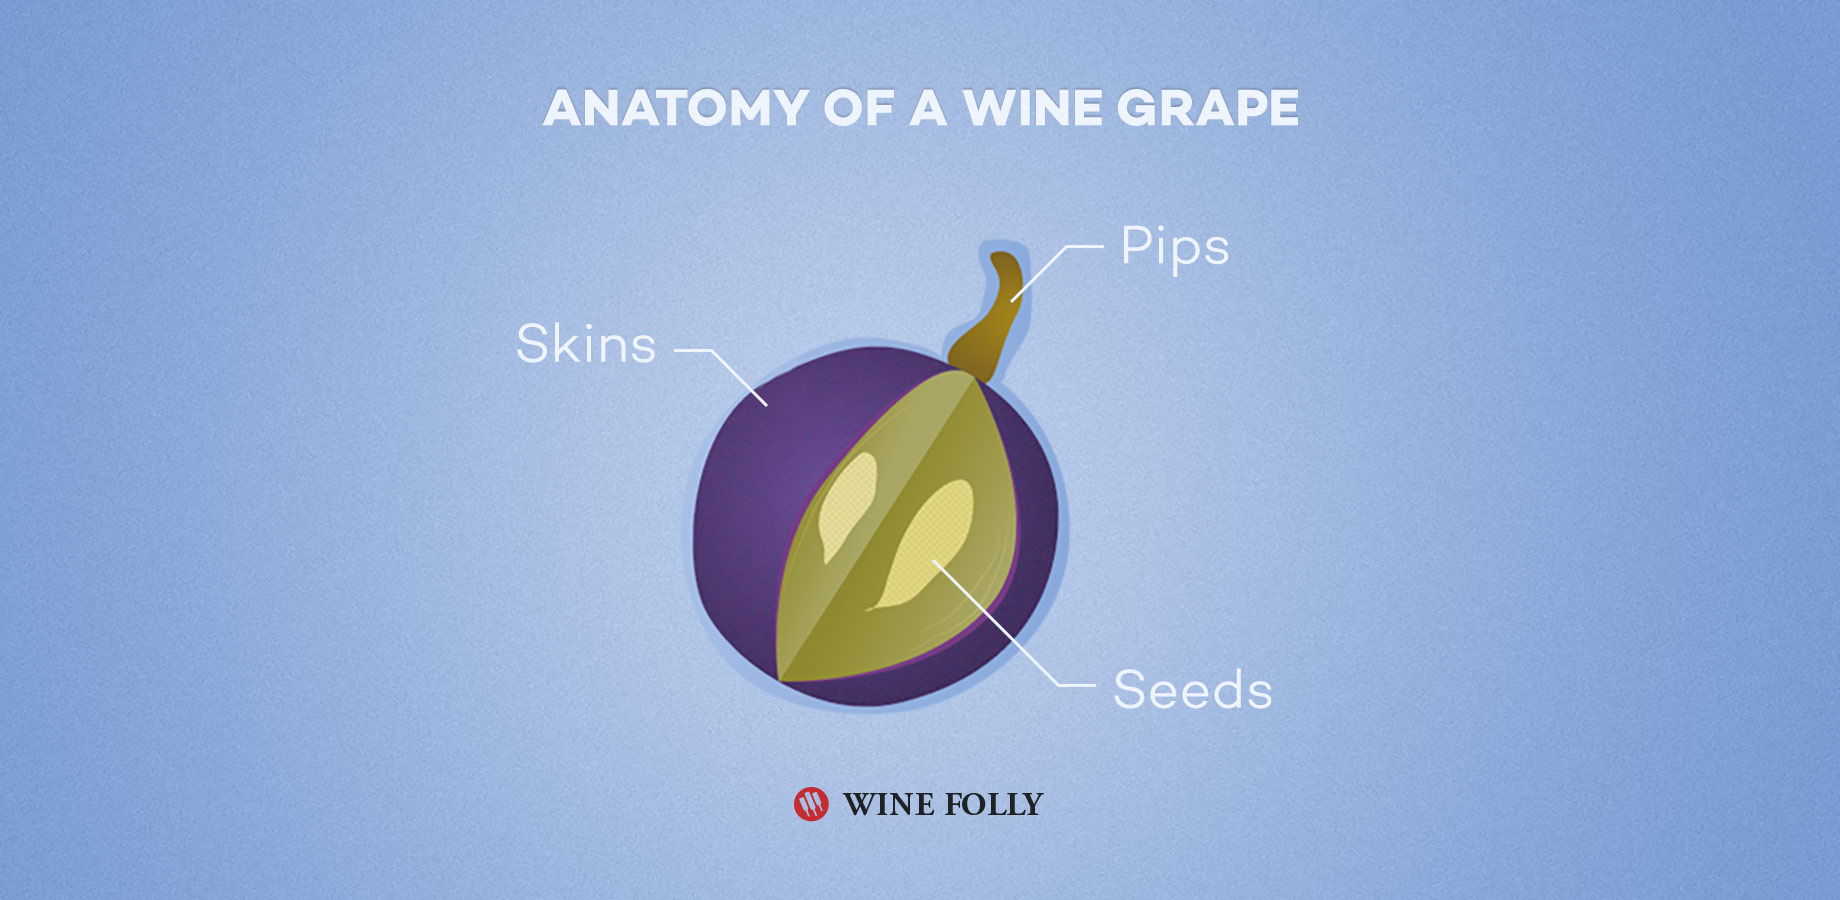 Anatomy of a wine grape - illustration by Wine Folly